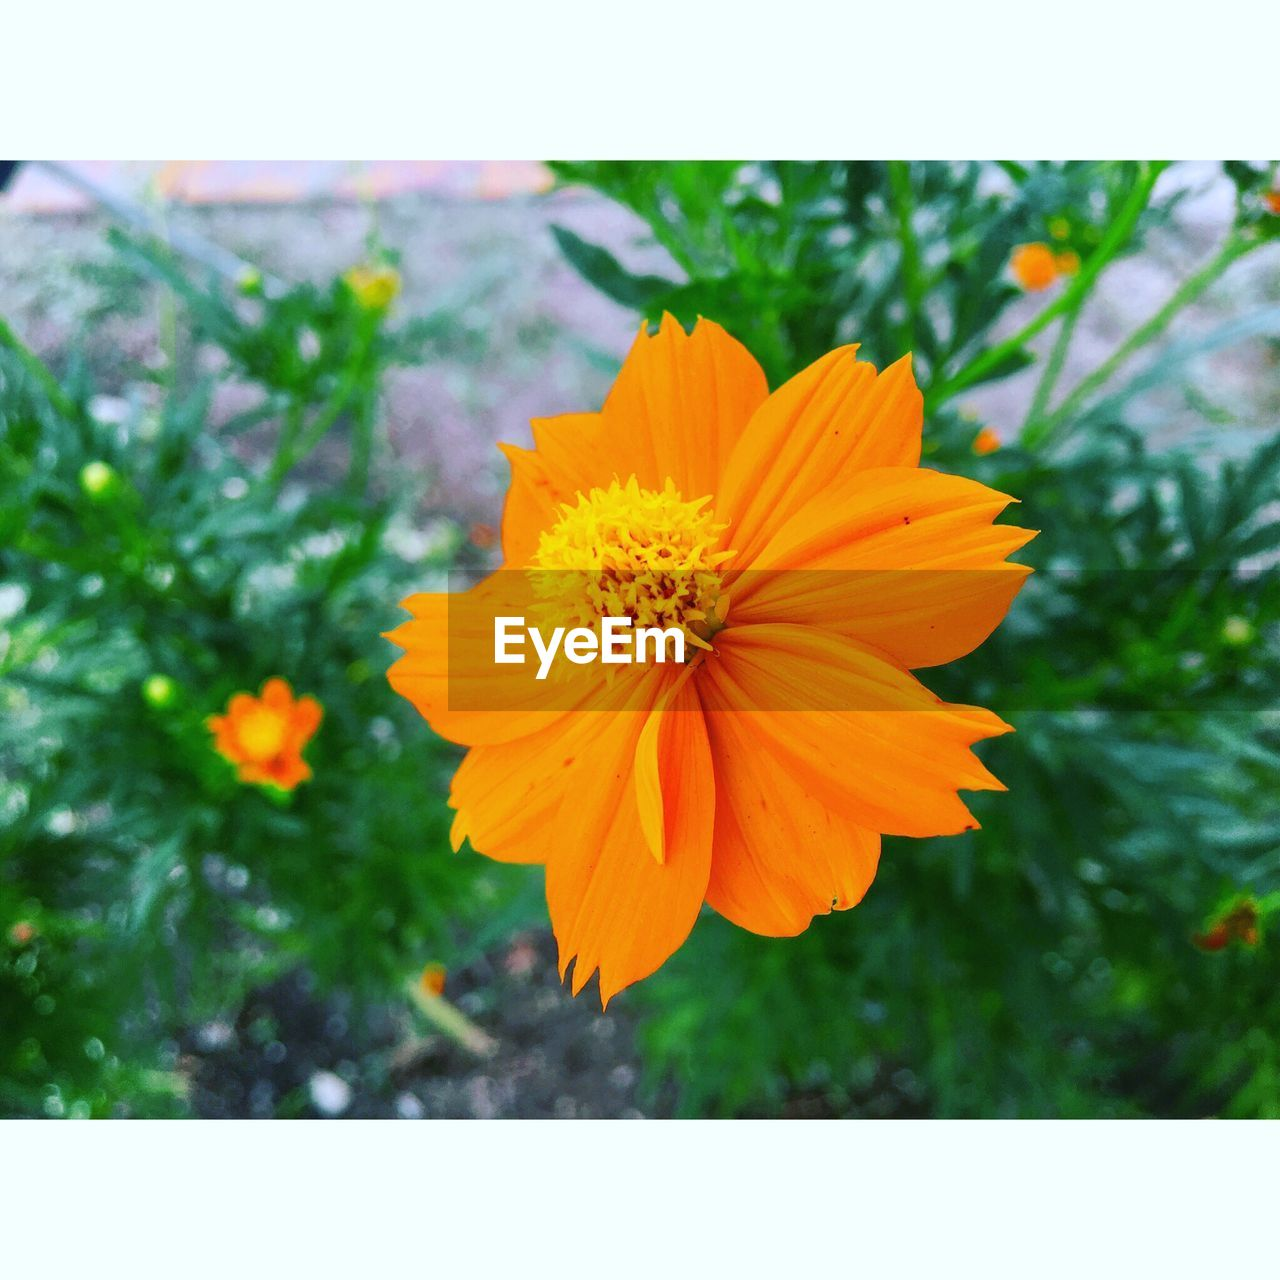 flower, nature, growth, petal, fragility, plant, beauty in nature, freshness, close-up, flower head, focus on foreground, no people, outdoors, day, yellow, blooming